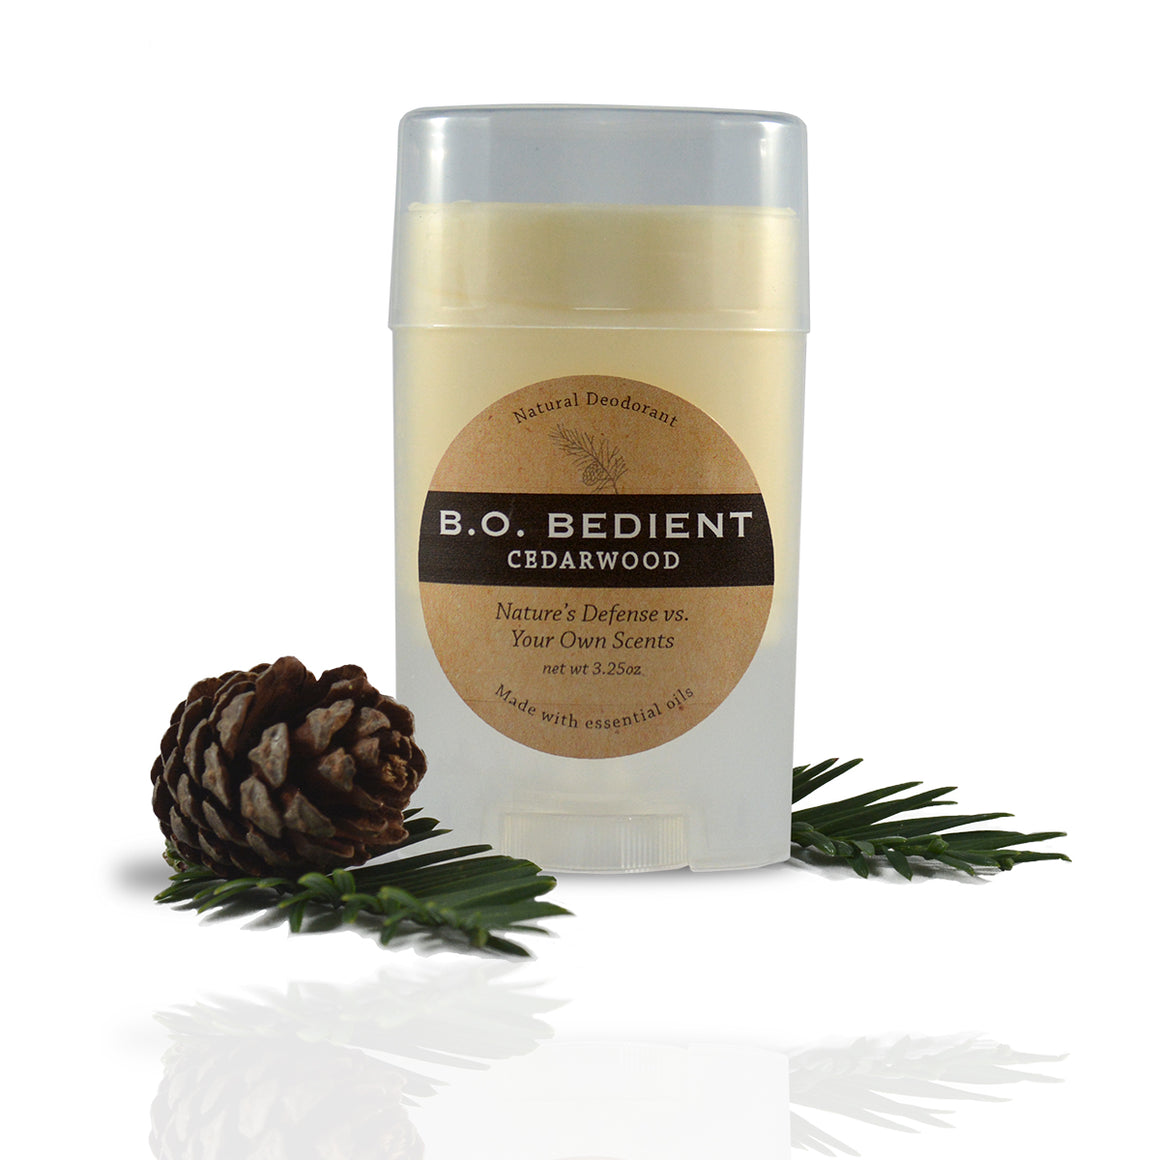 All Natural Deodorant - Cedarwood Stick